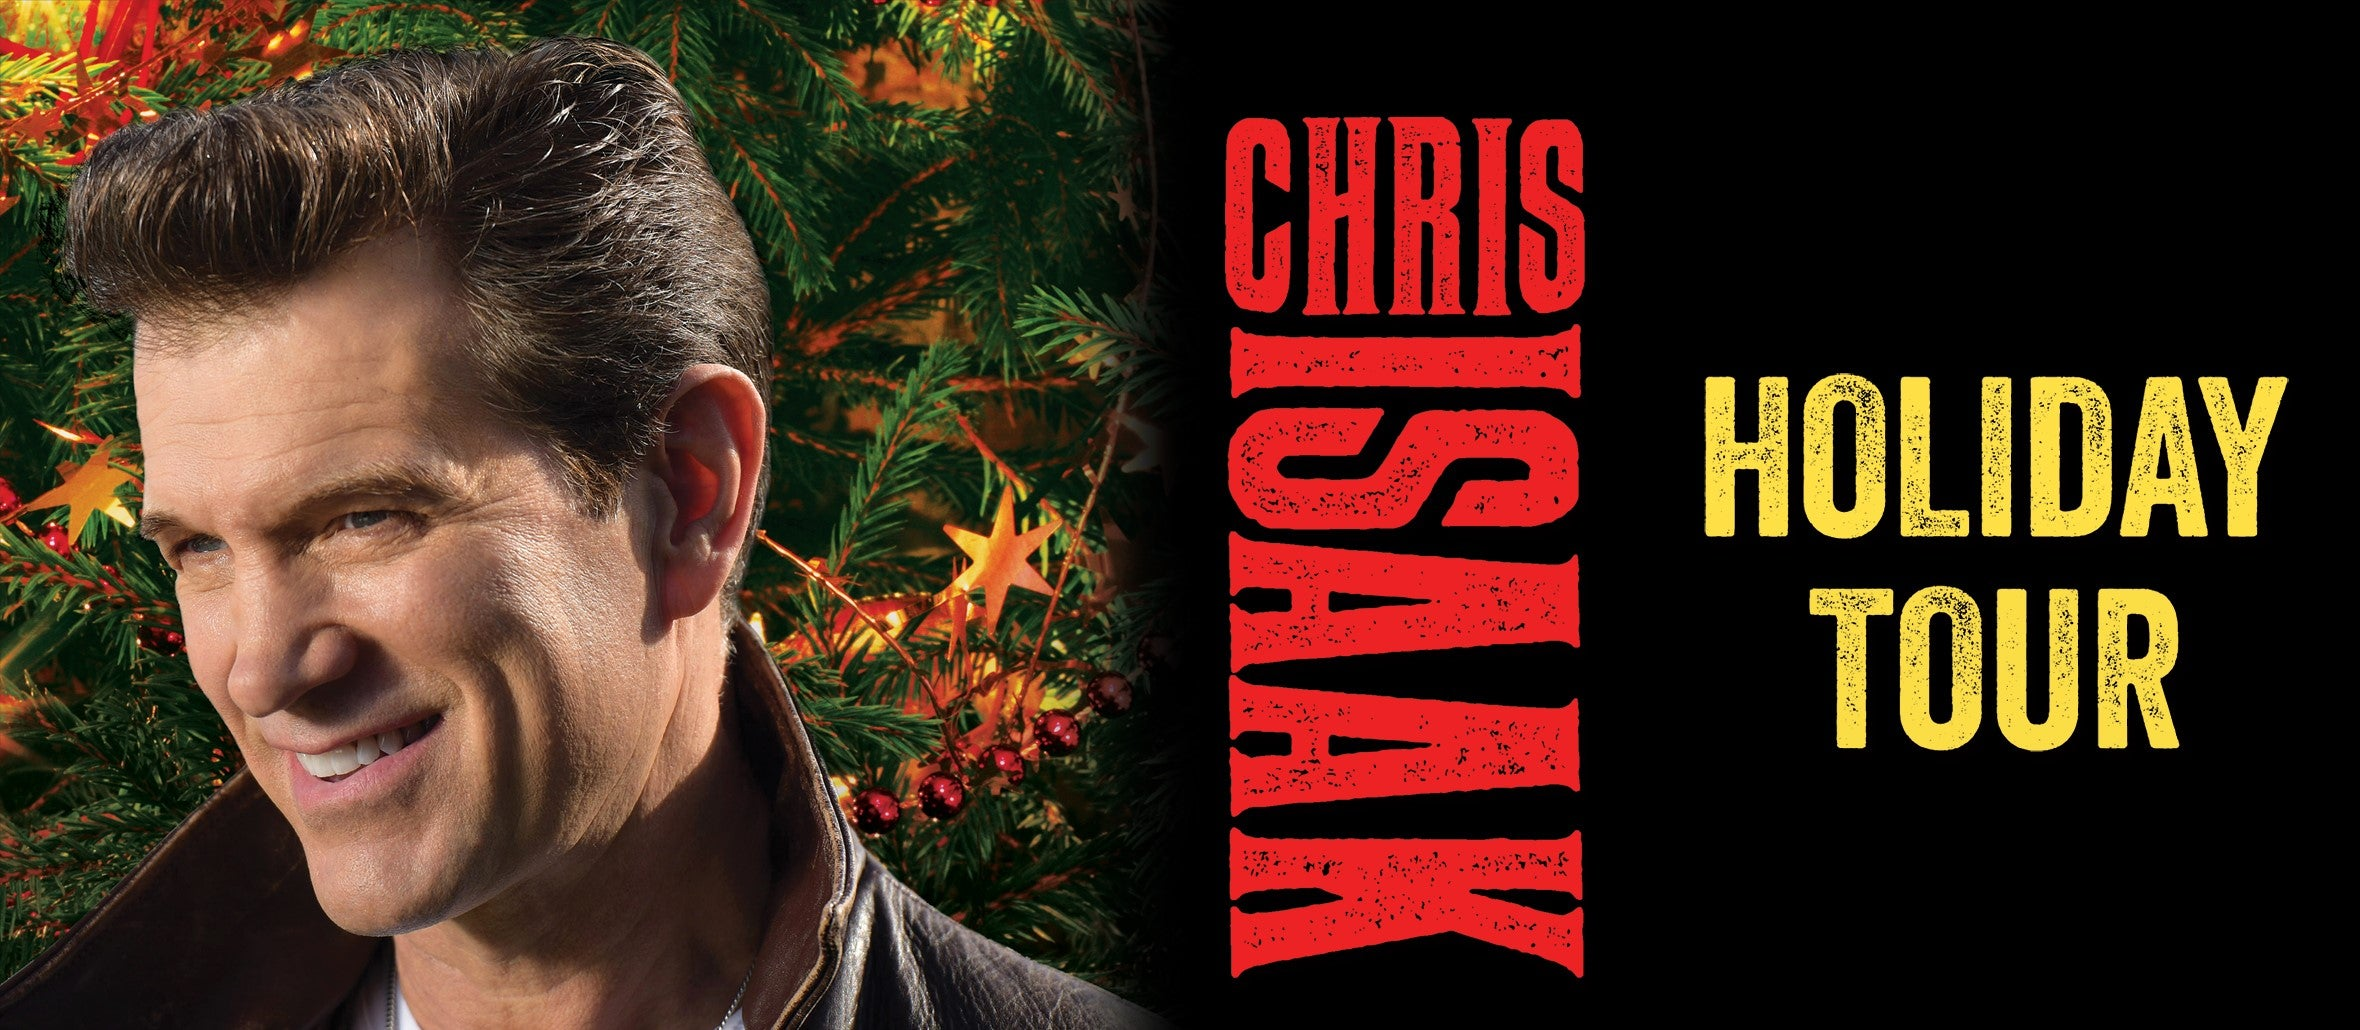 Chris Isaak Holiday Tour 2018